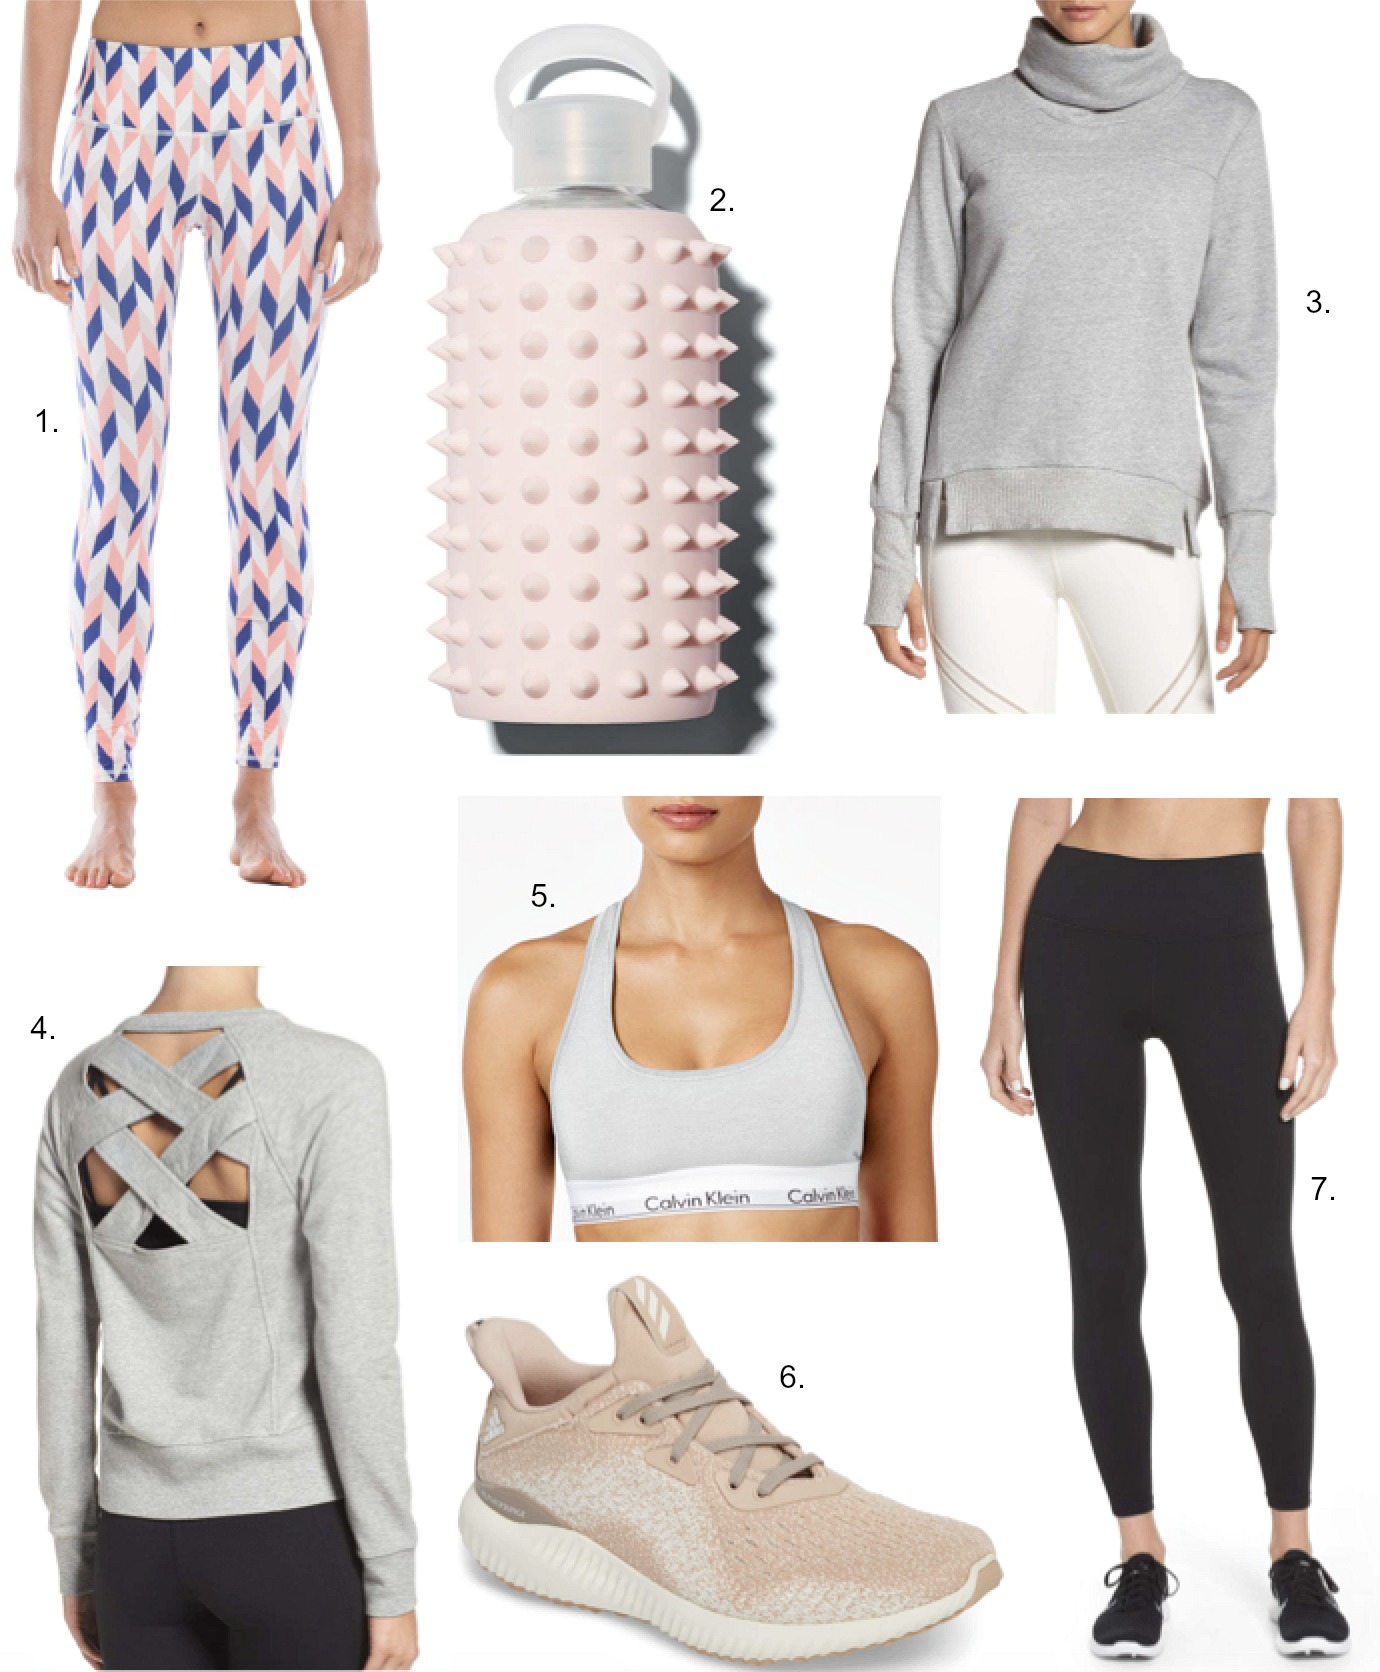 Cute Activewear BKR Spike water bottle best workout clothes zella live in leggings shop athleisure